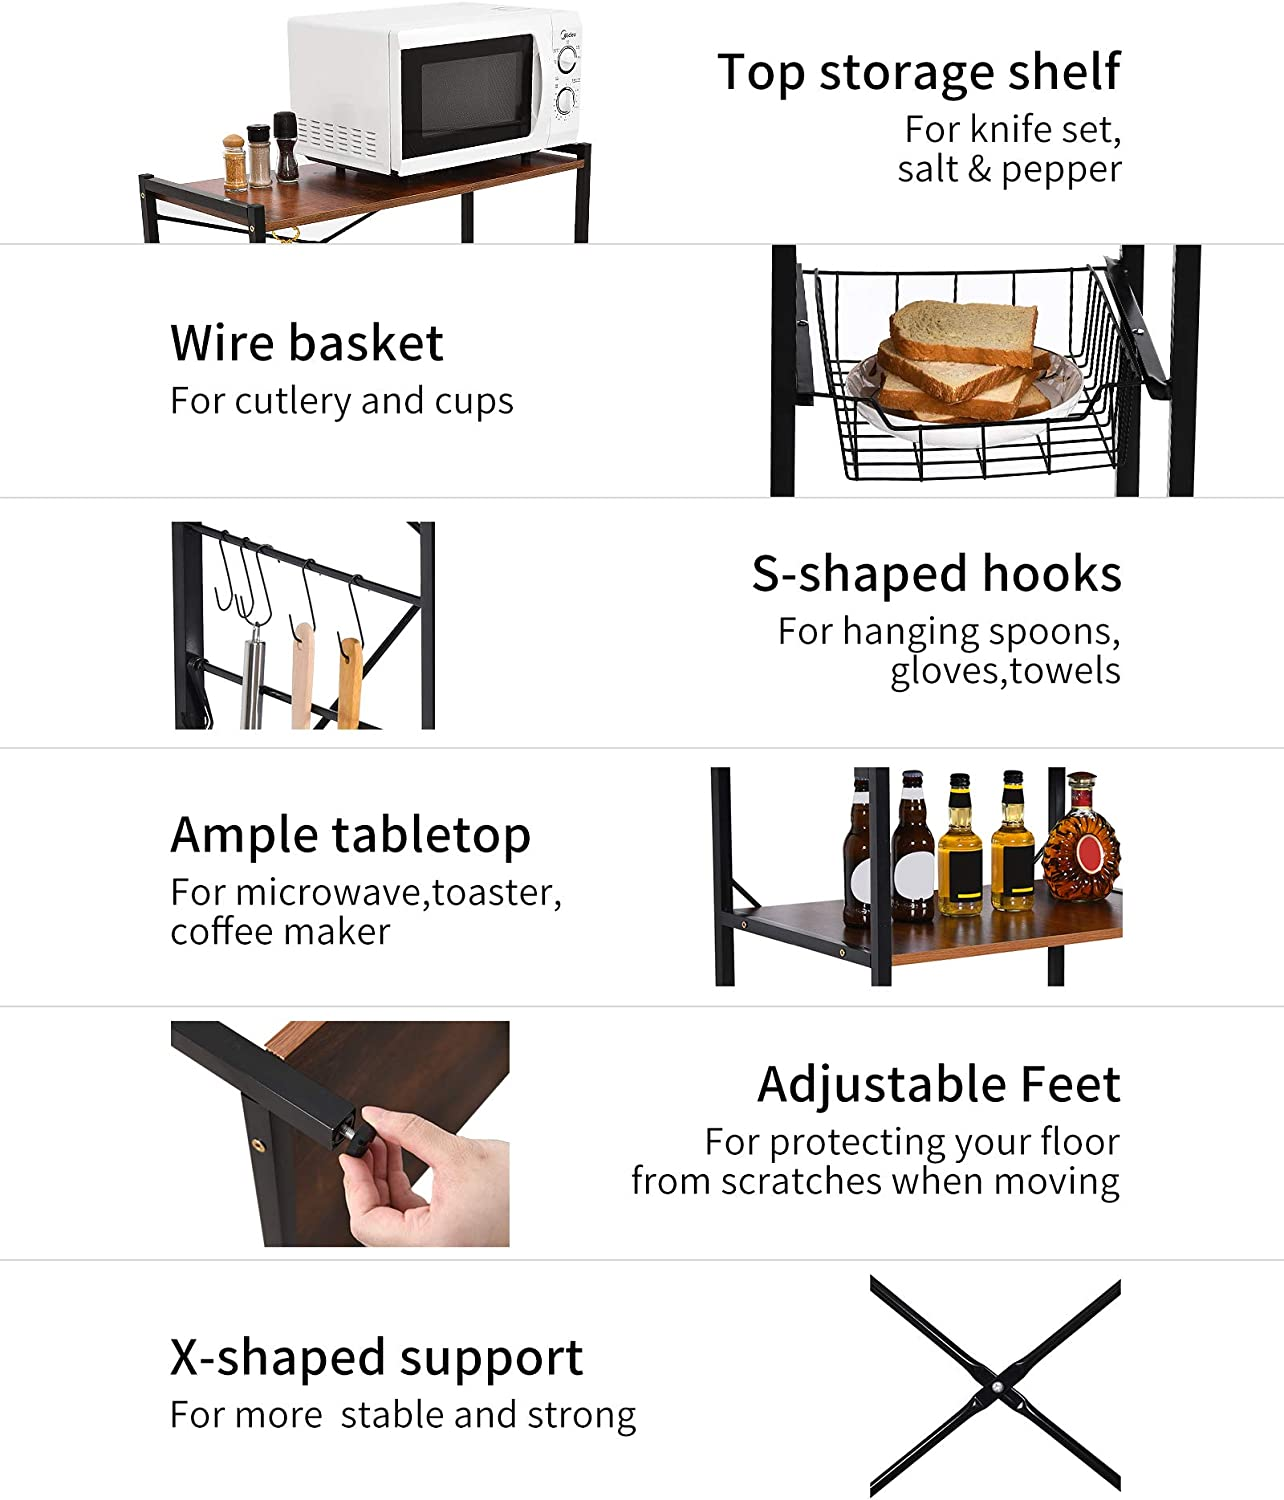 YITAHOME Kitchen Bakers Rack,Microwave Oven Stand,Kitchen Utility Storage Shelf,Kitchen Workstation Organizers Rack with 2 Slide-Out Baskets,10 Hooks,Free Standing Utility Storage Shelf Organizer